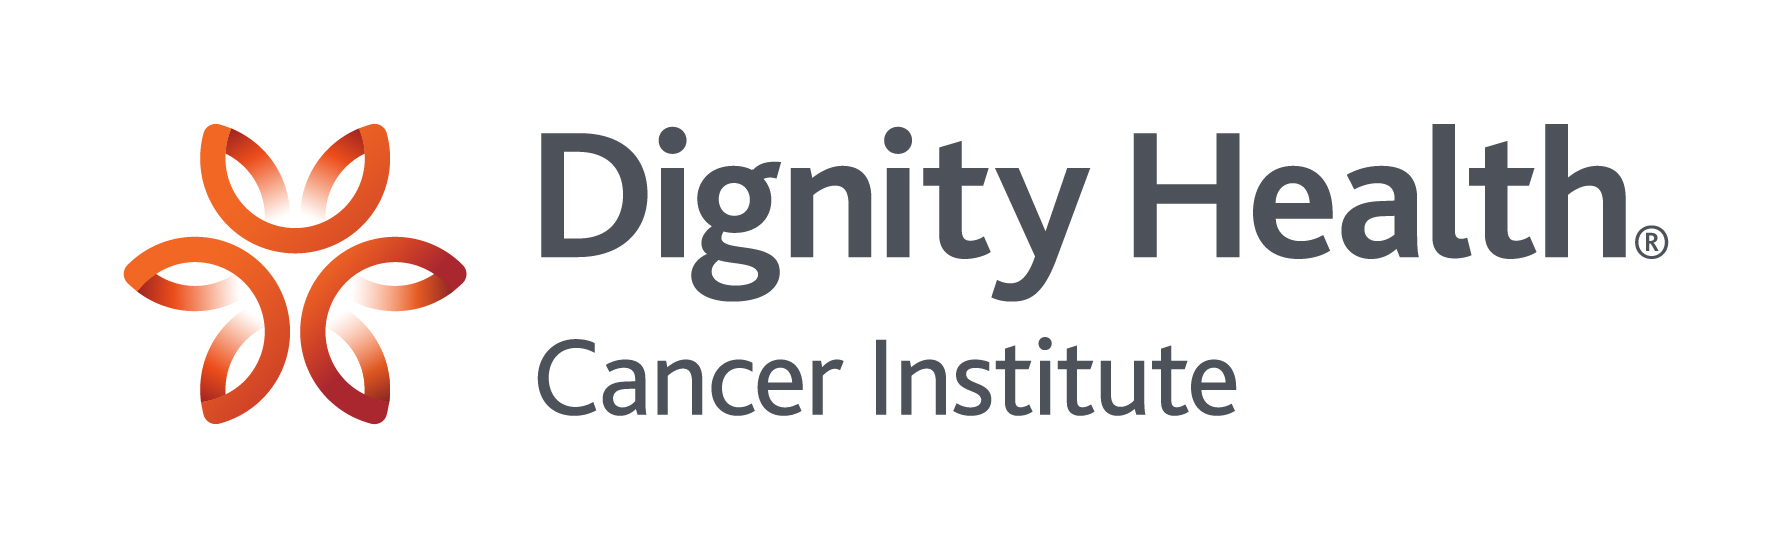 Oncology Supportive Care & Survivorship, Phoenix, AZ - Dignity Health - Cancer Institute at St. Joseph's Hospital and Medical Center